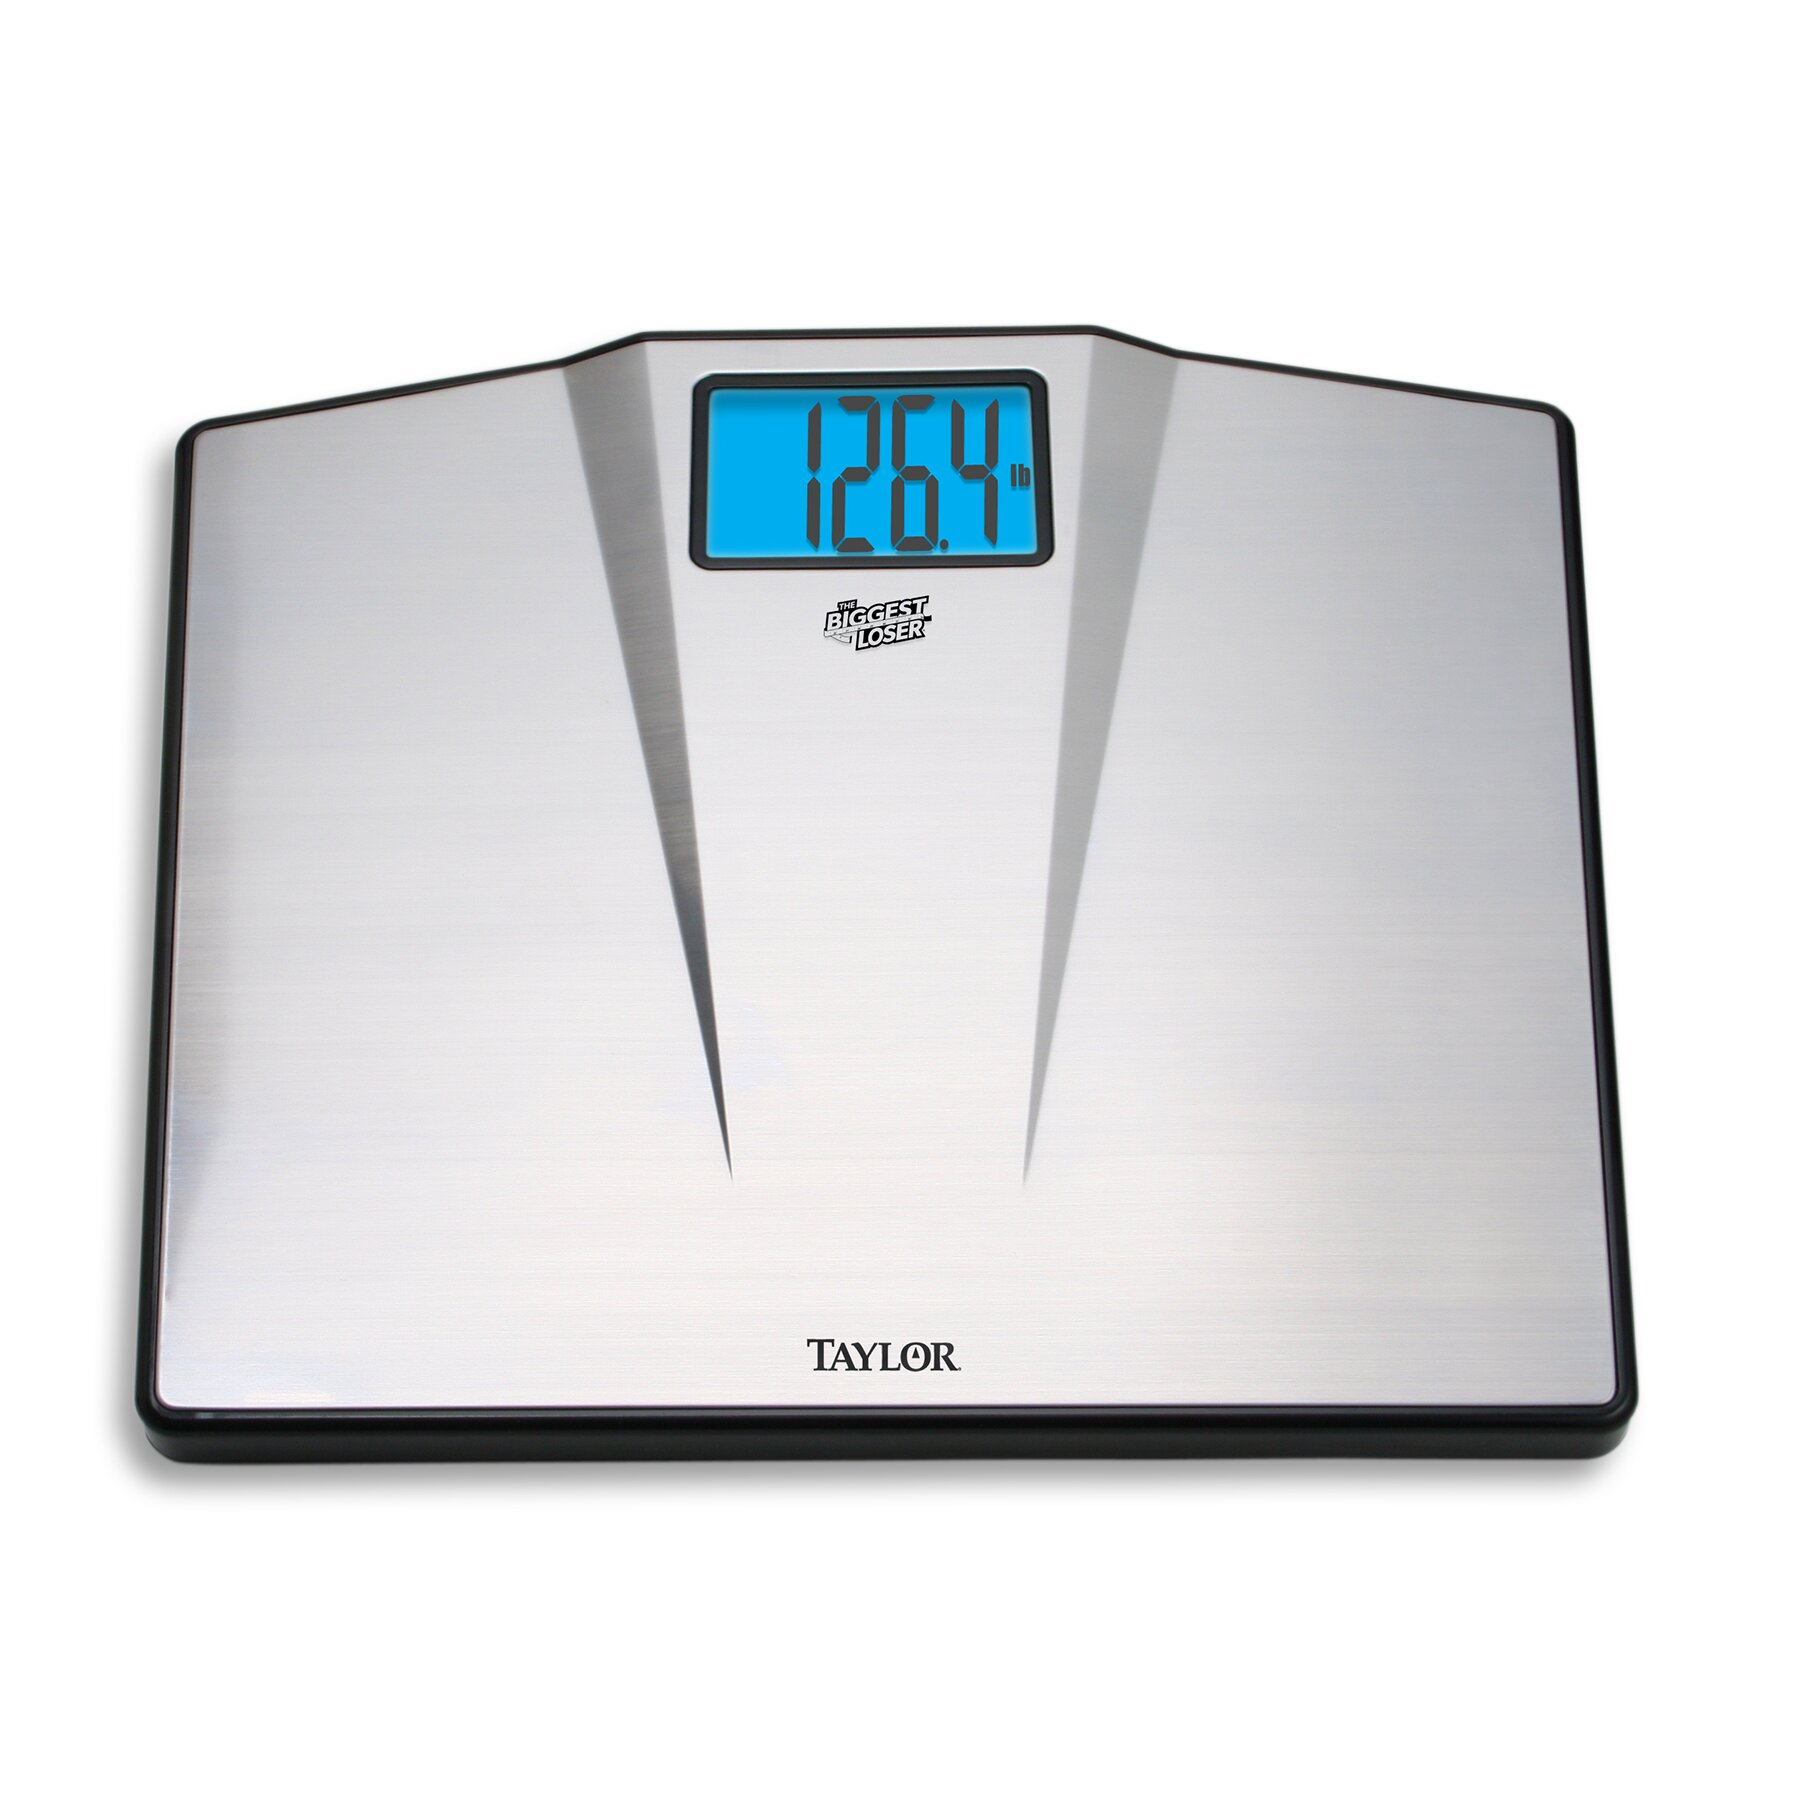 taylor bathroom scales - kahtany